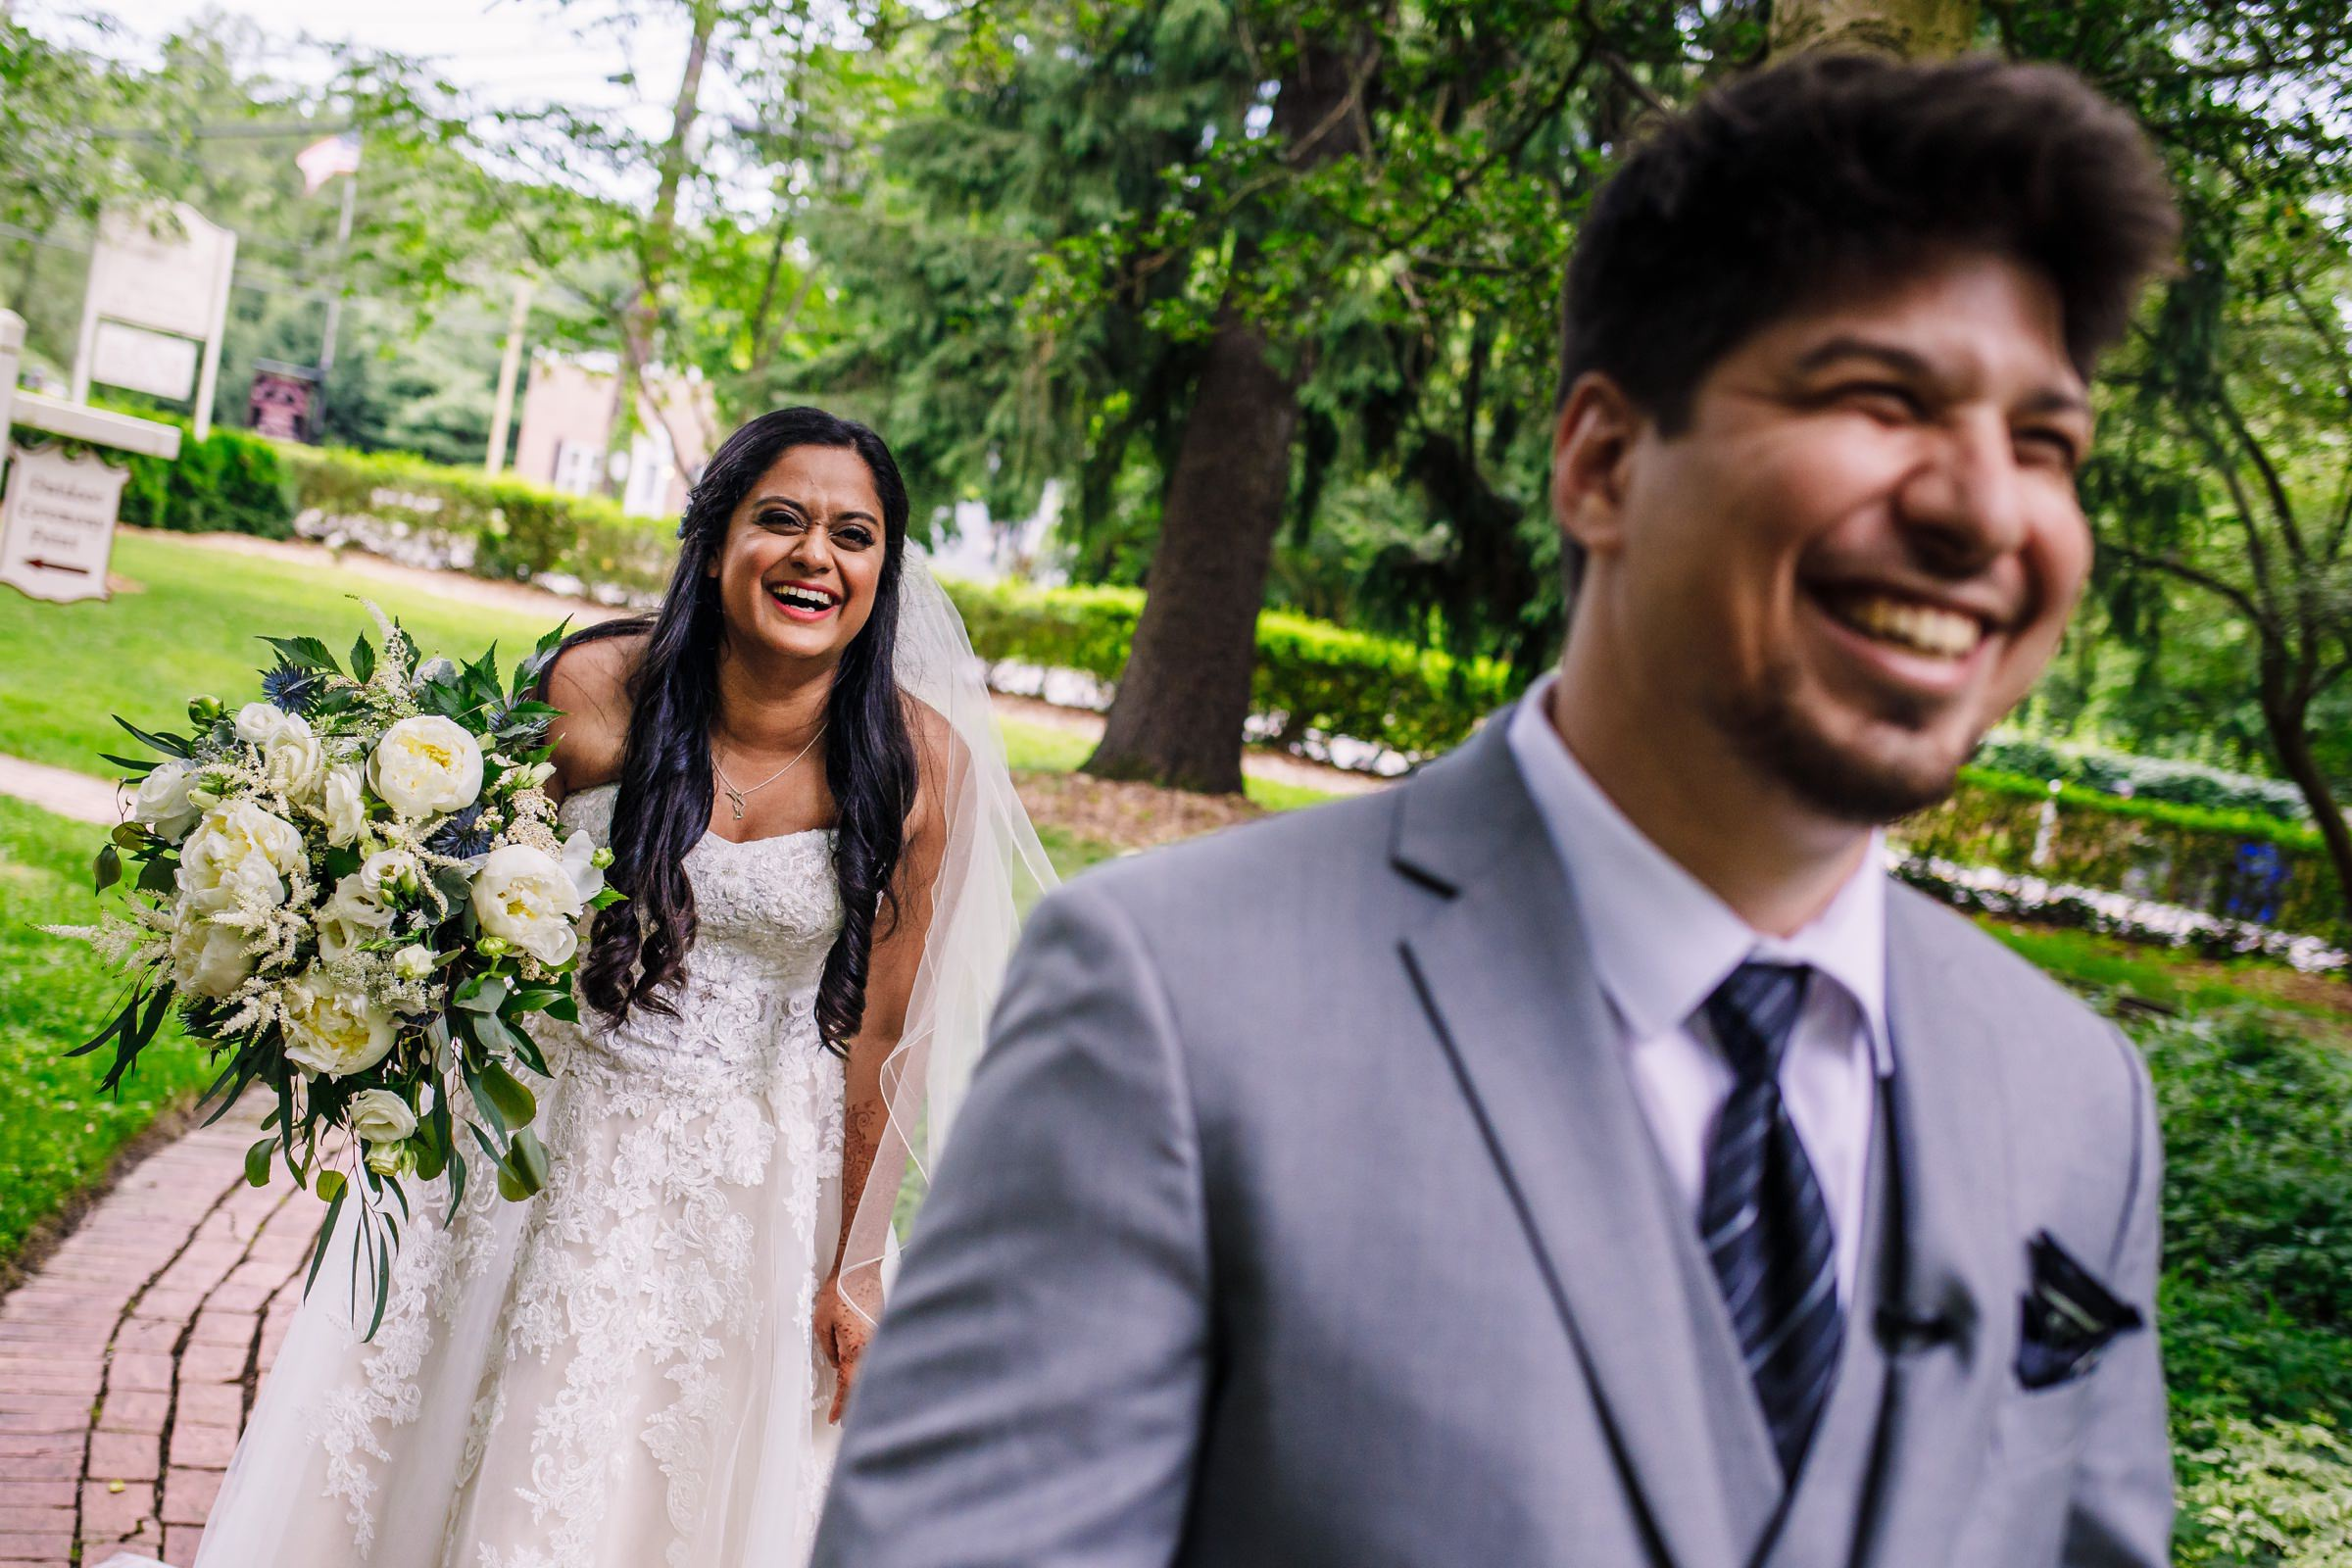 laughing-groom-and-excited-bride-during-first-look-photography-by-brea.jpg